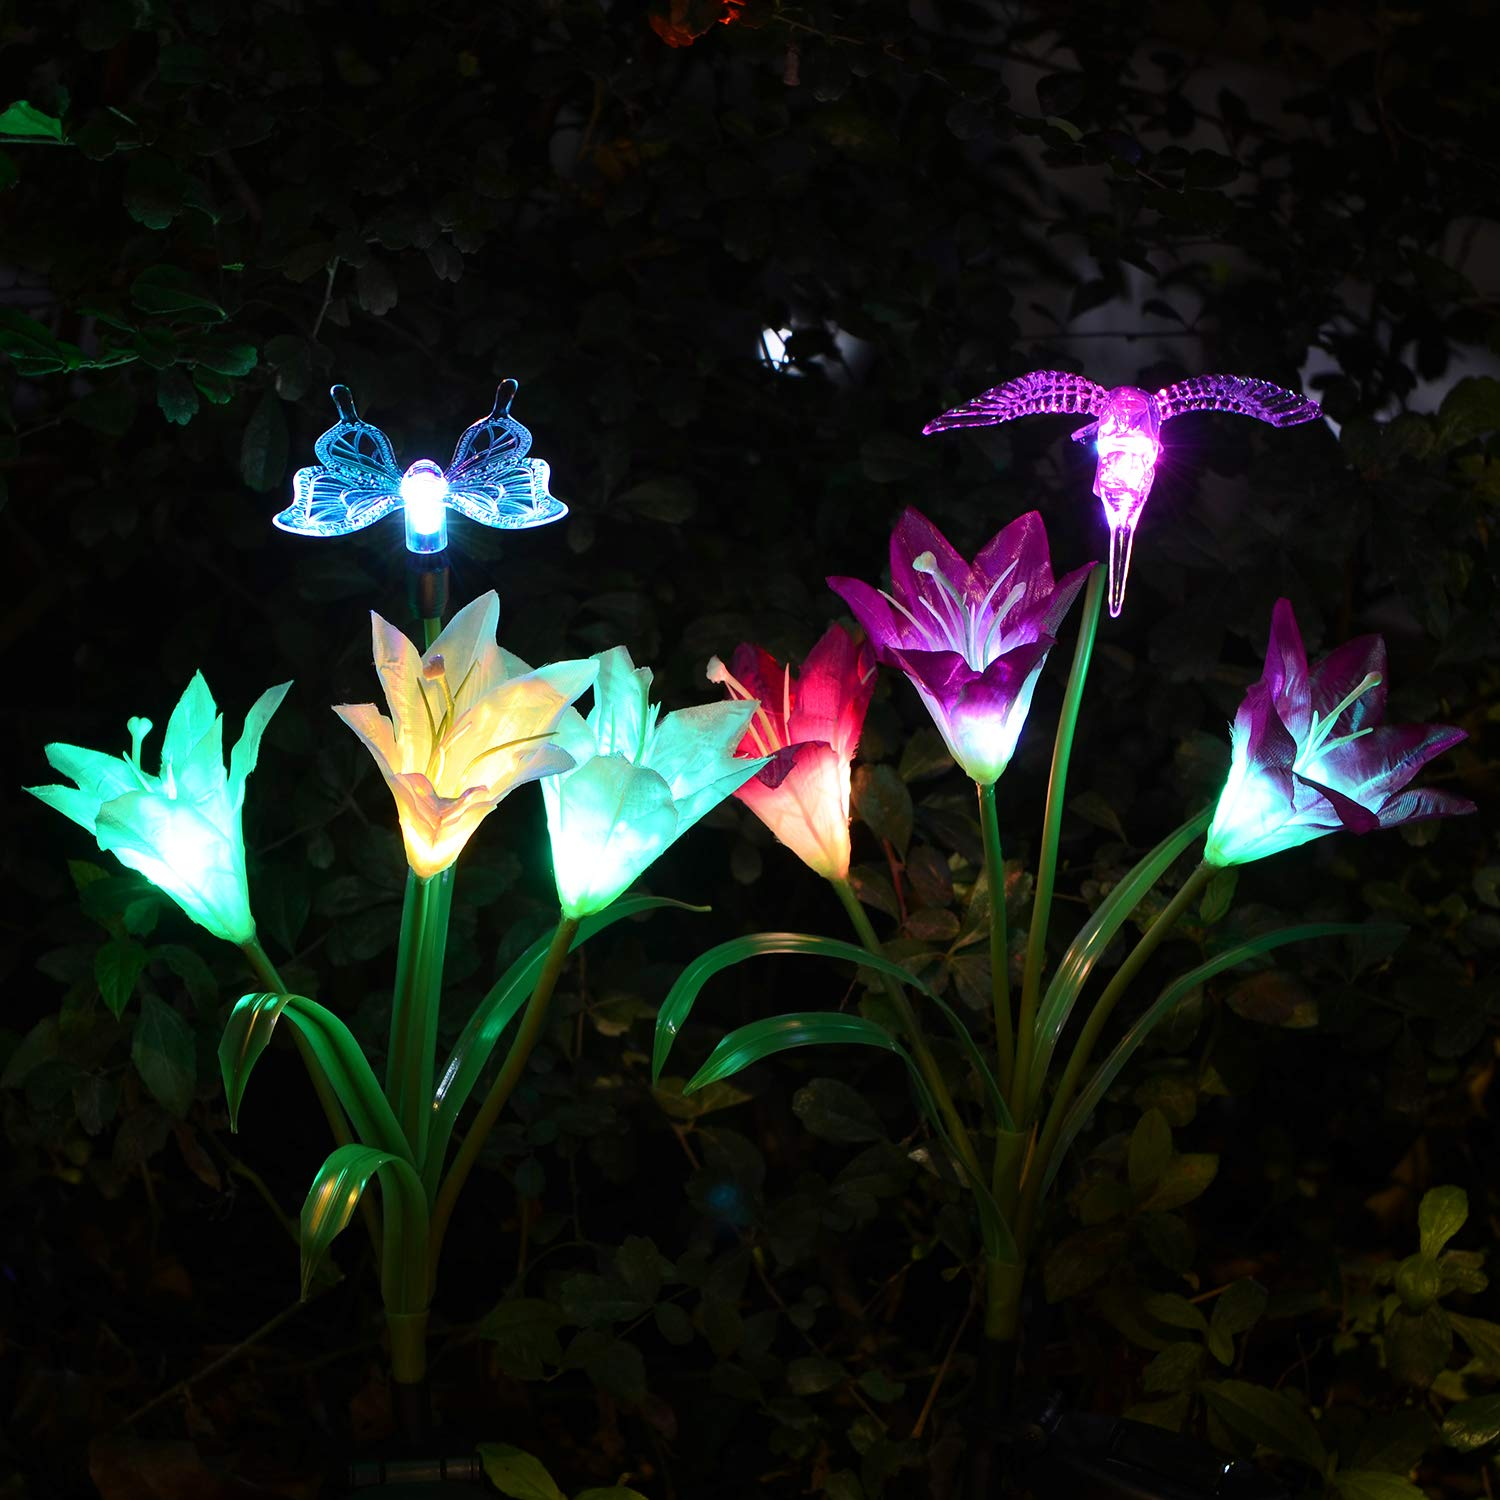 Outdoor Solar Garden Lights, 2 Pack Solar Powered Lights with Lily Flower, Hummingbird and Butterfly, Multi-Color Changing LED Solar Decorative Lights for Garden, Patio, Backyard